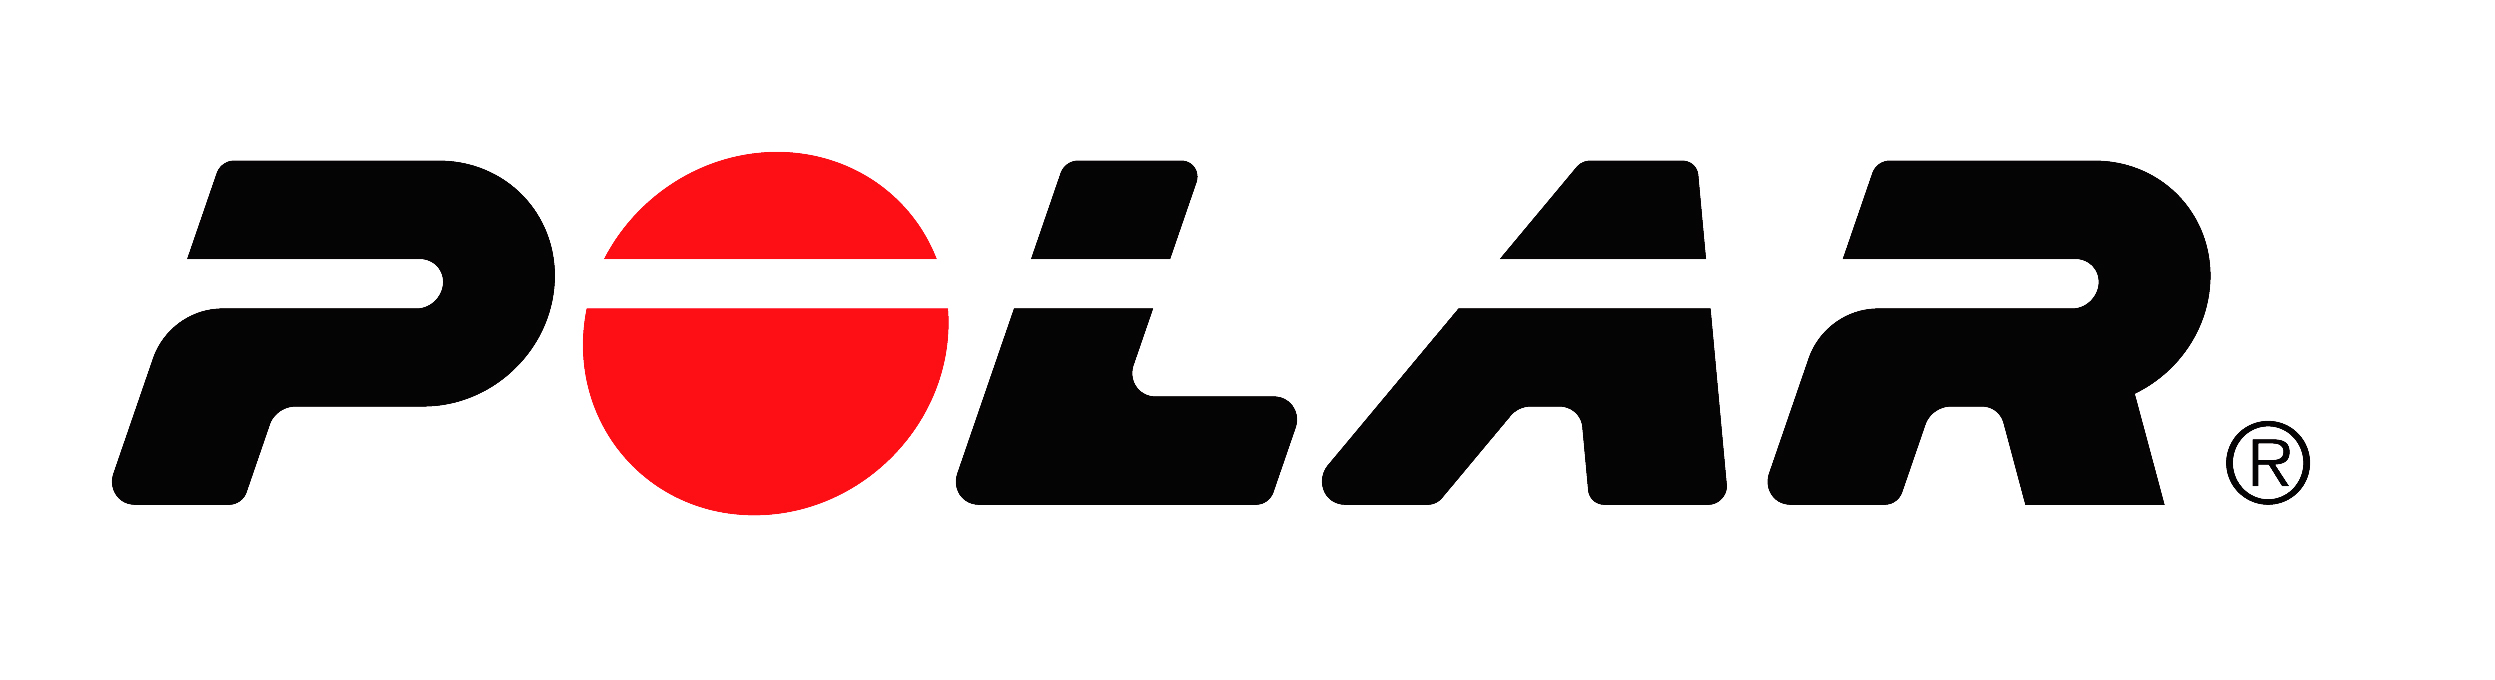 Atlanta Track Club Announces Partnership with Polar Electro Inc.